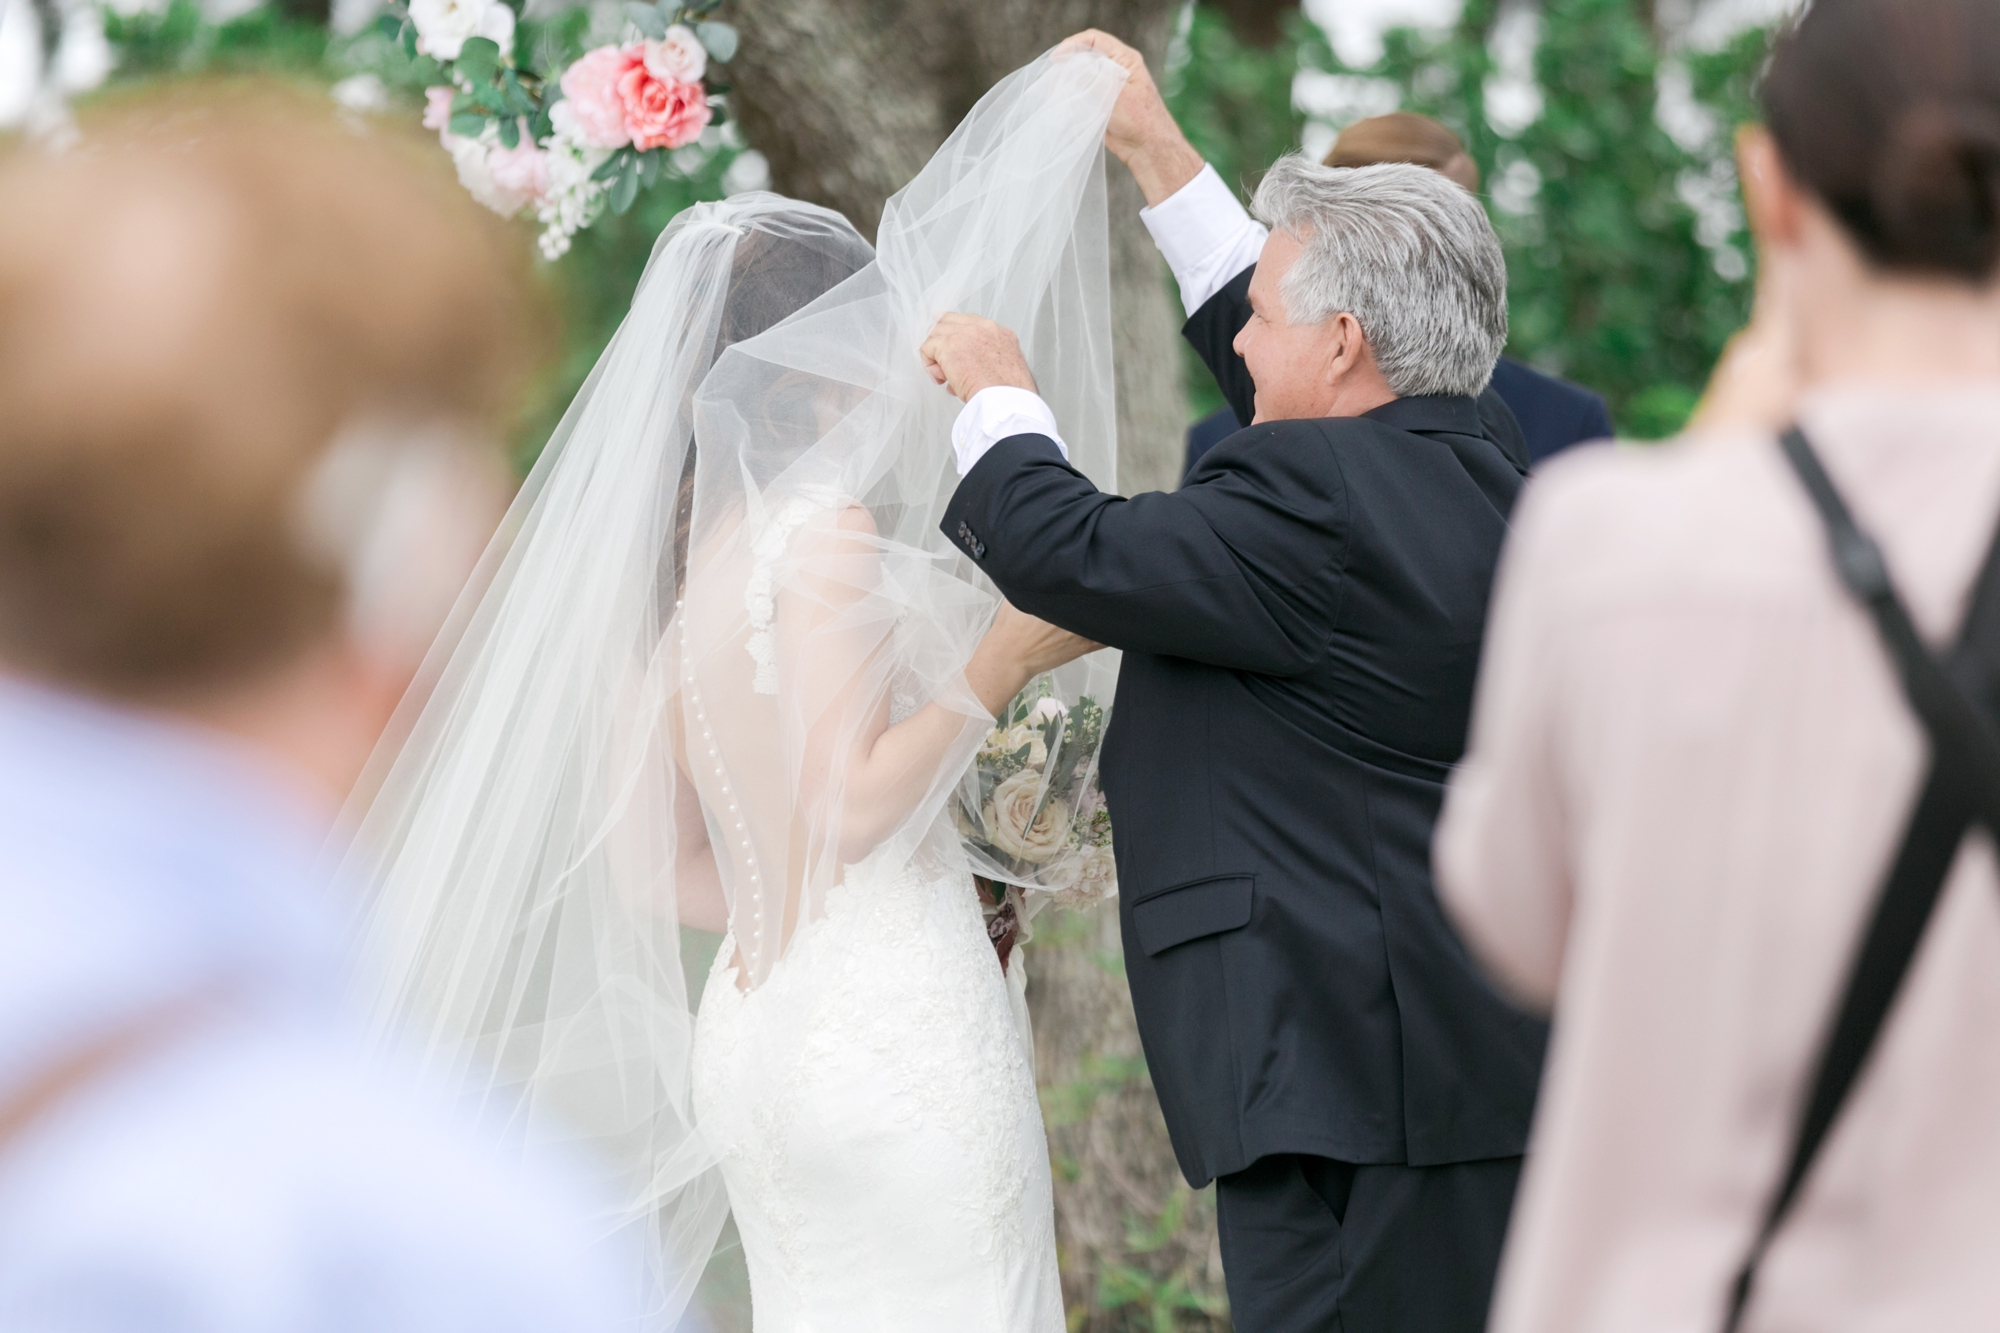 dad lifting veil for bride